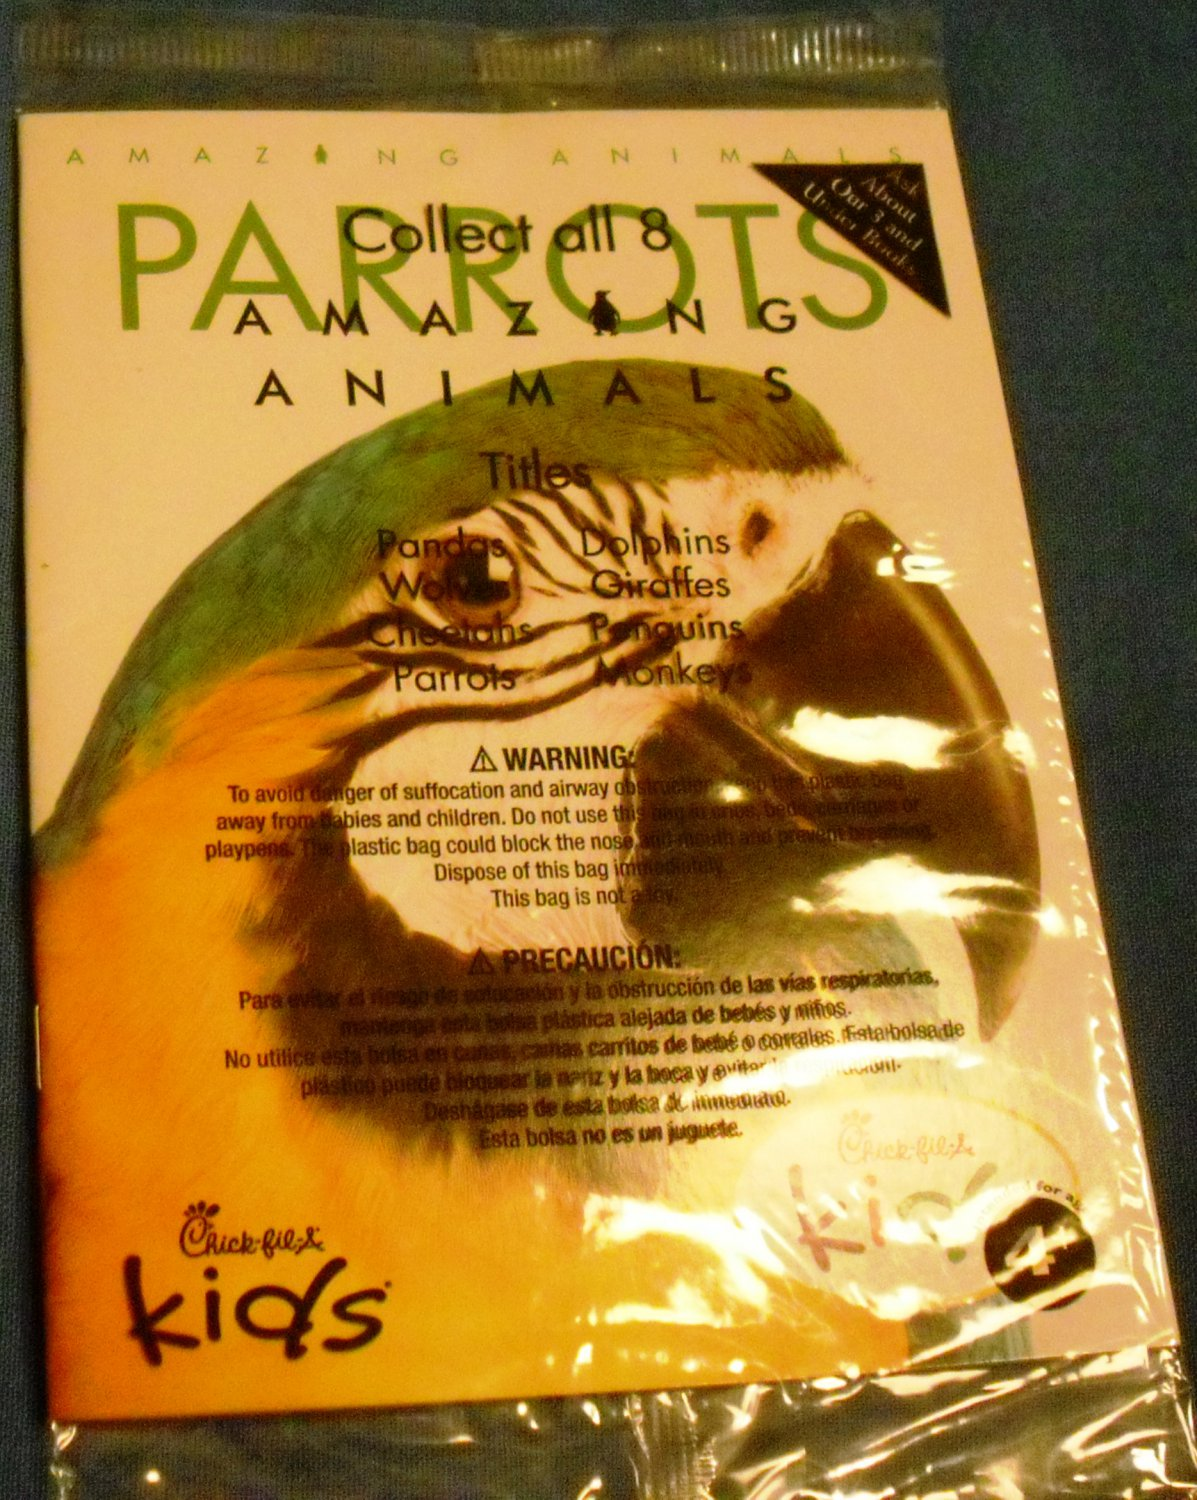 2014 Chick-fil-A Kids Meal Toy - Parrots